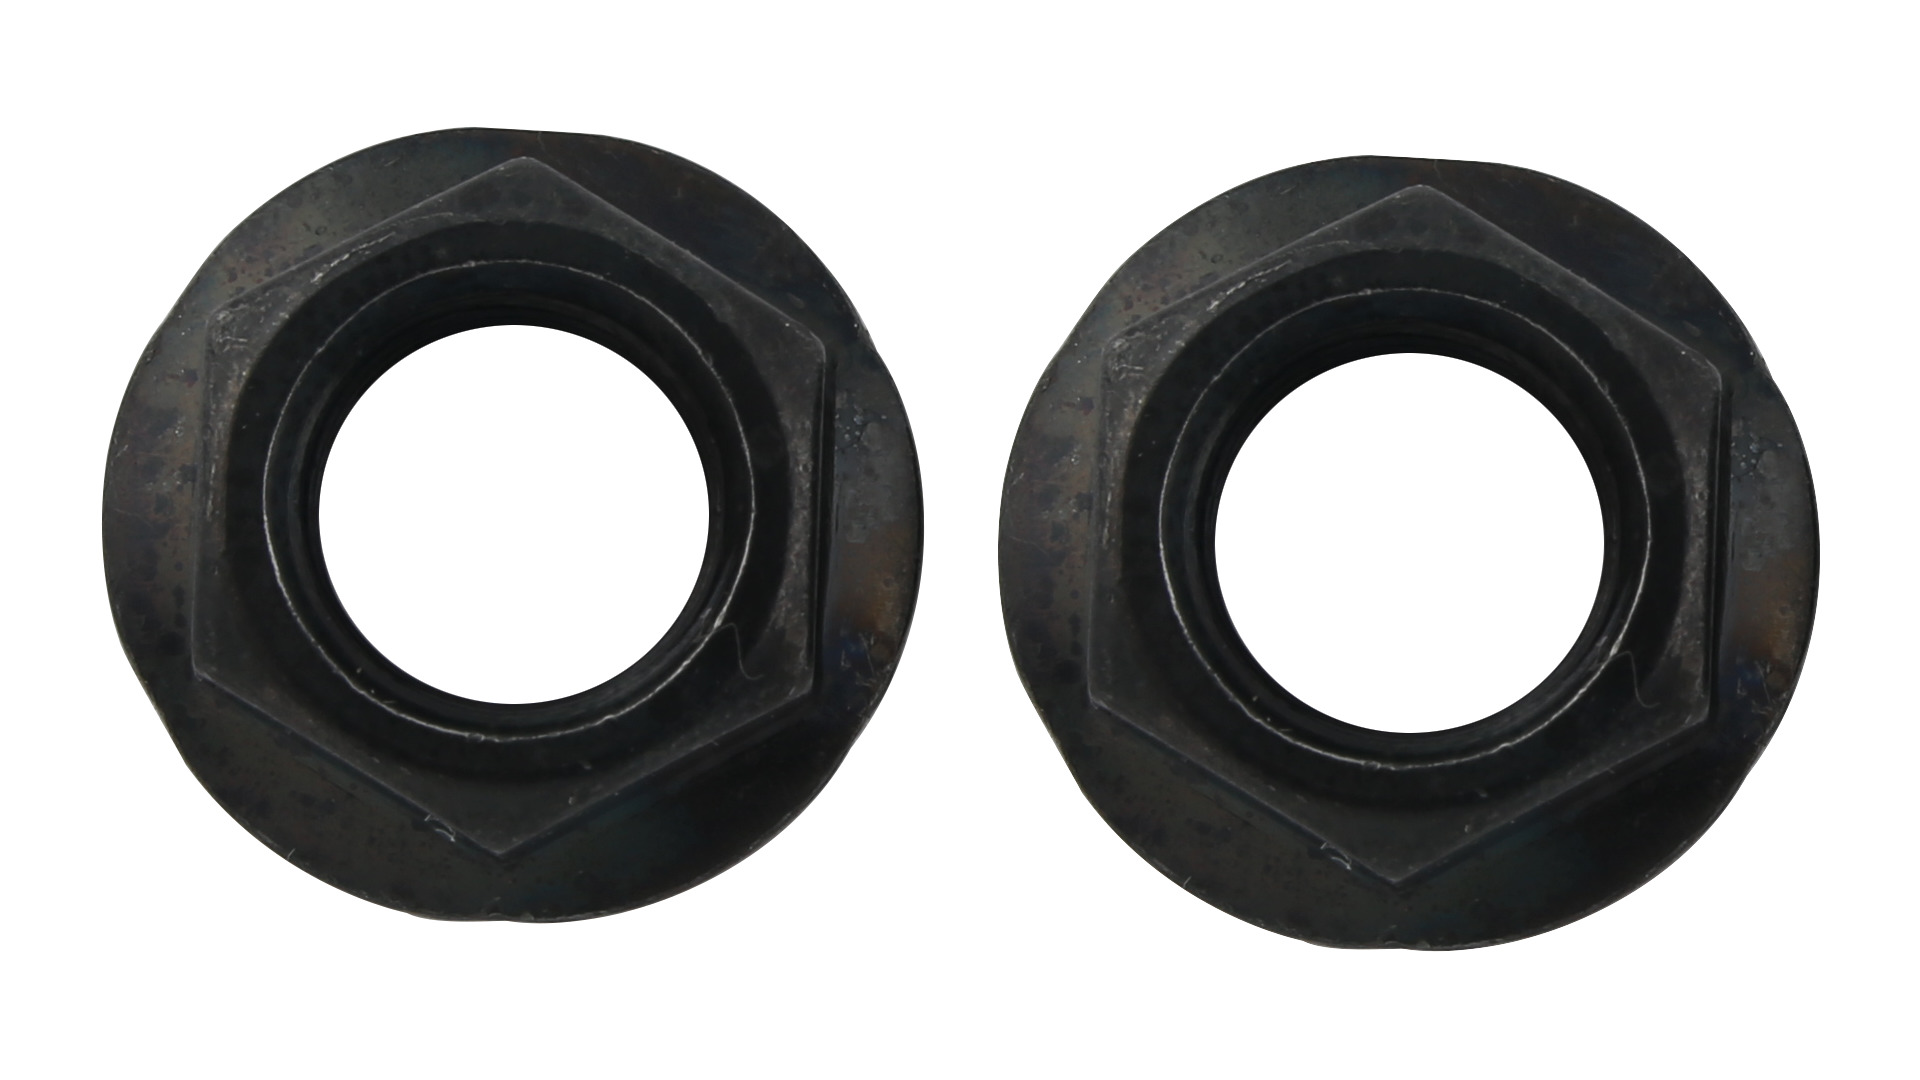 Contec Axle Nut M10x1.25 (Pair)